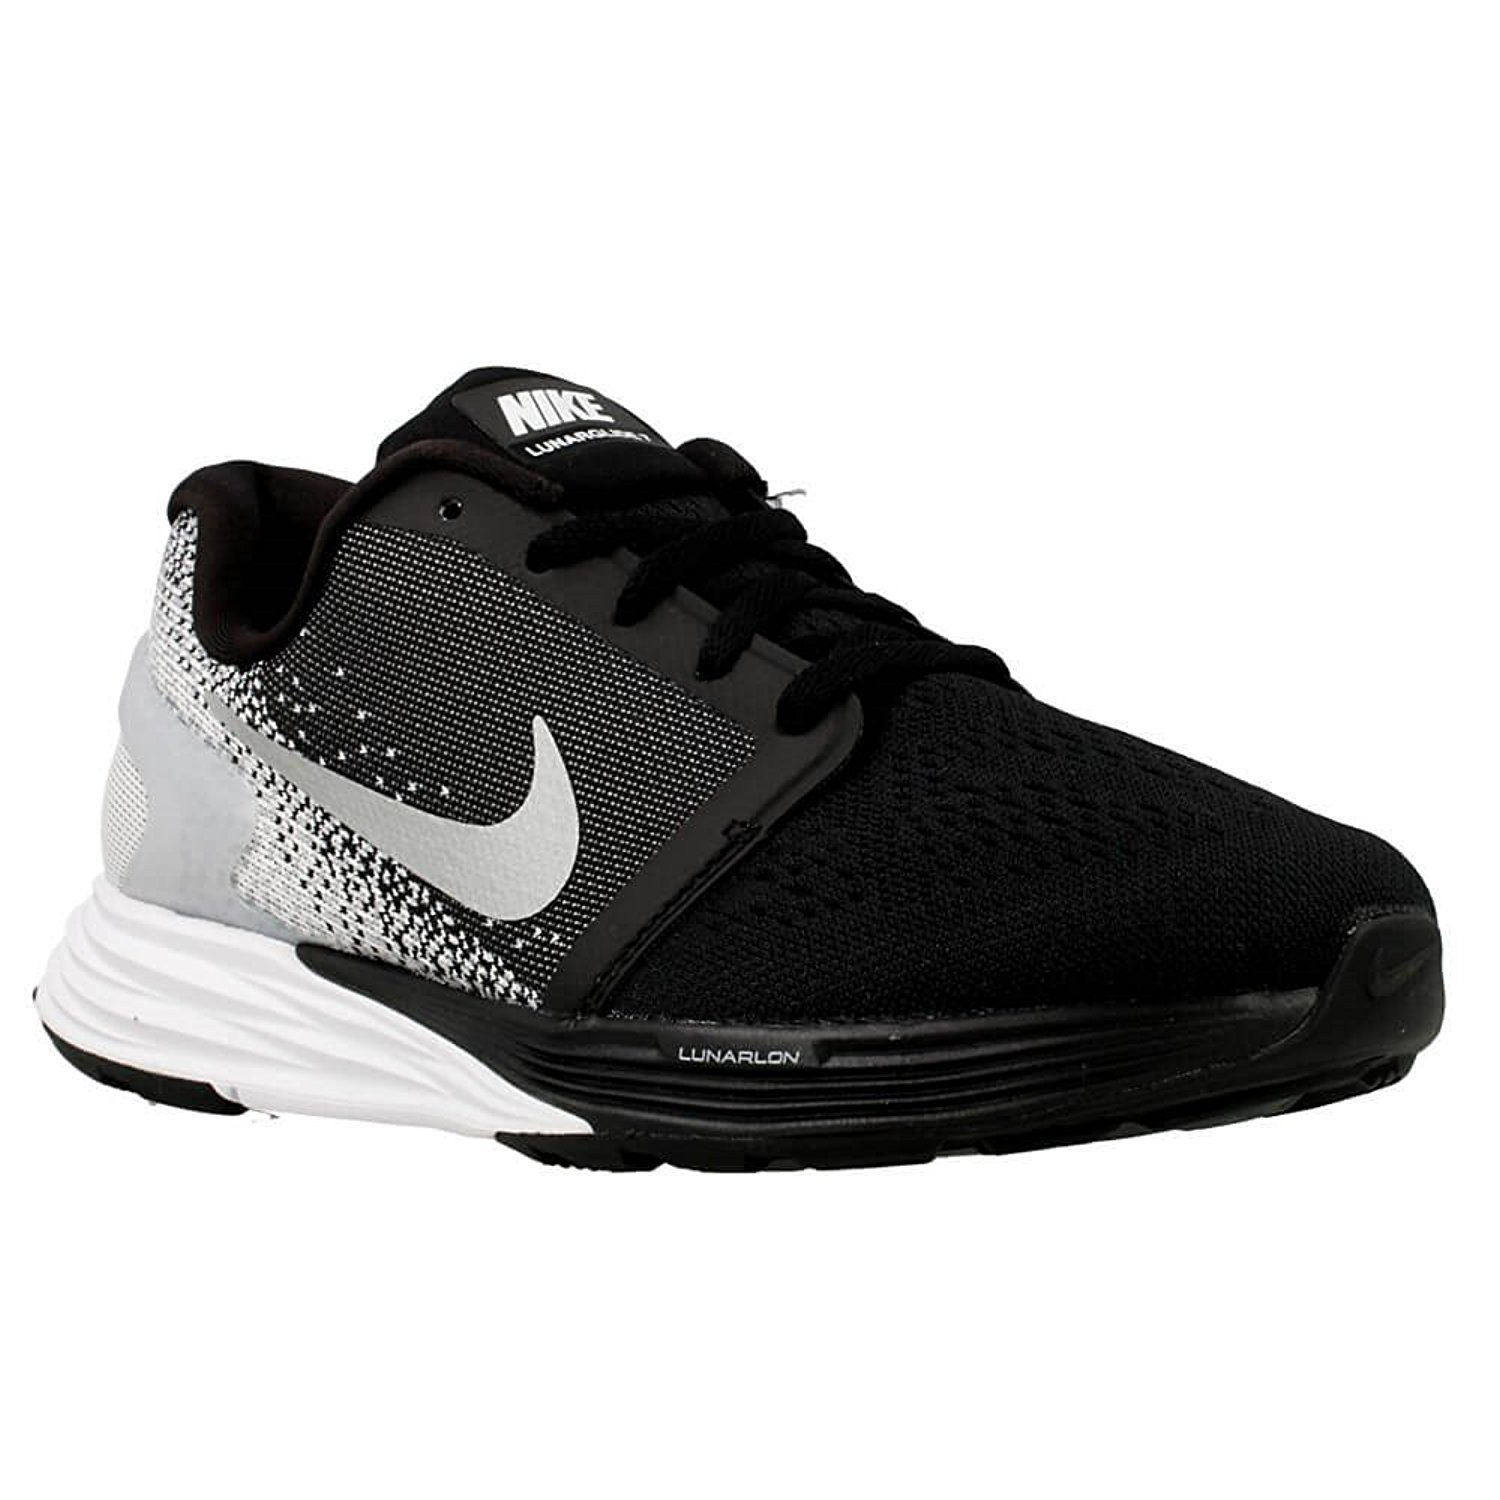 huge selection of 0de52 66d2c Amazon.com  Nike Lunarglide 7 (GS) US size 6.5 US 747965 001 Bk W  Shoes